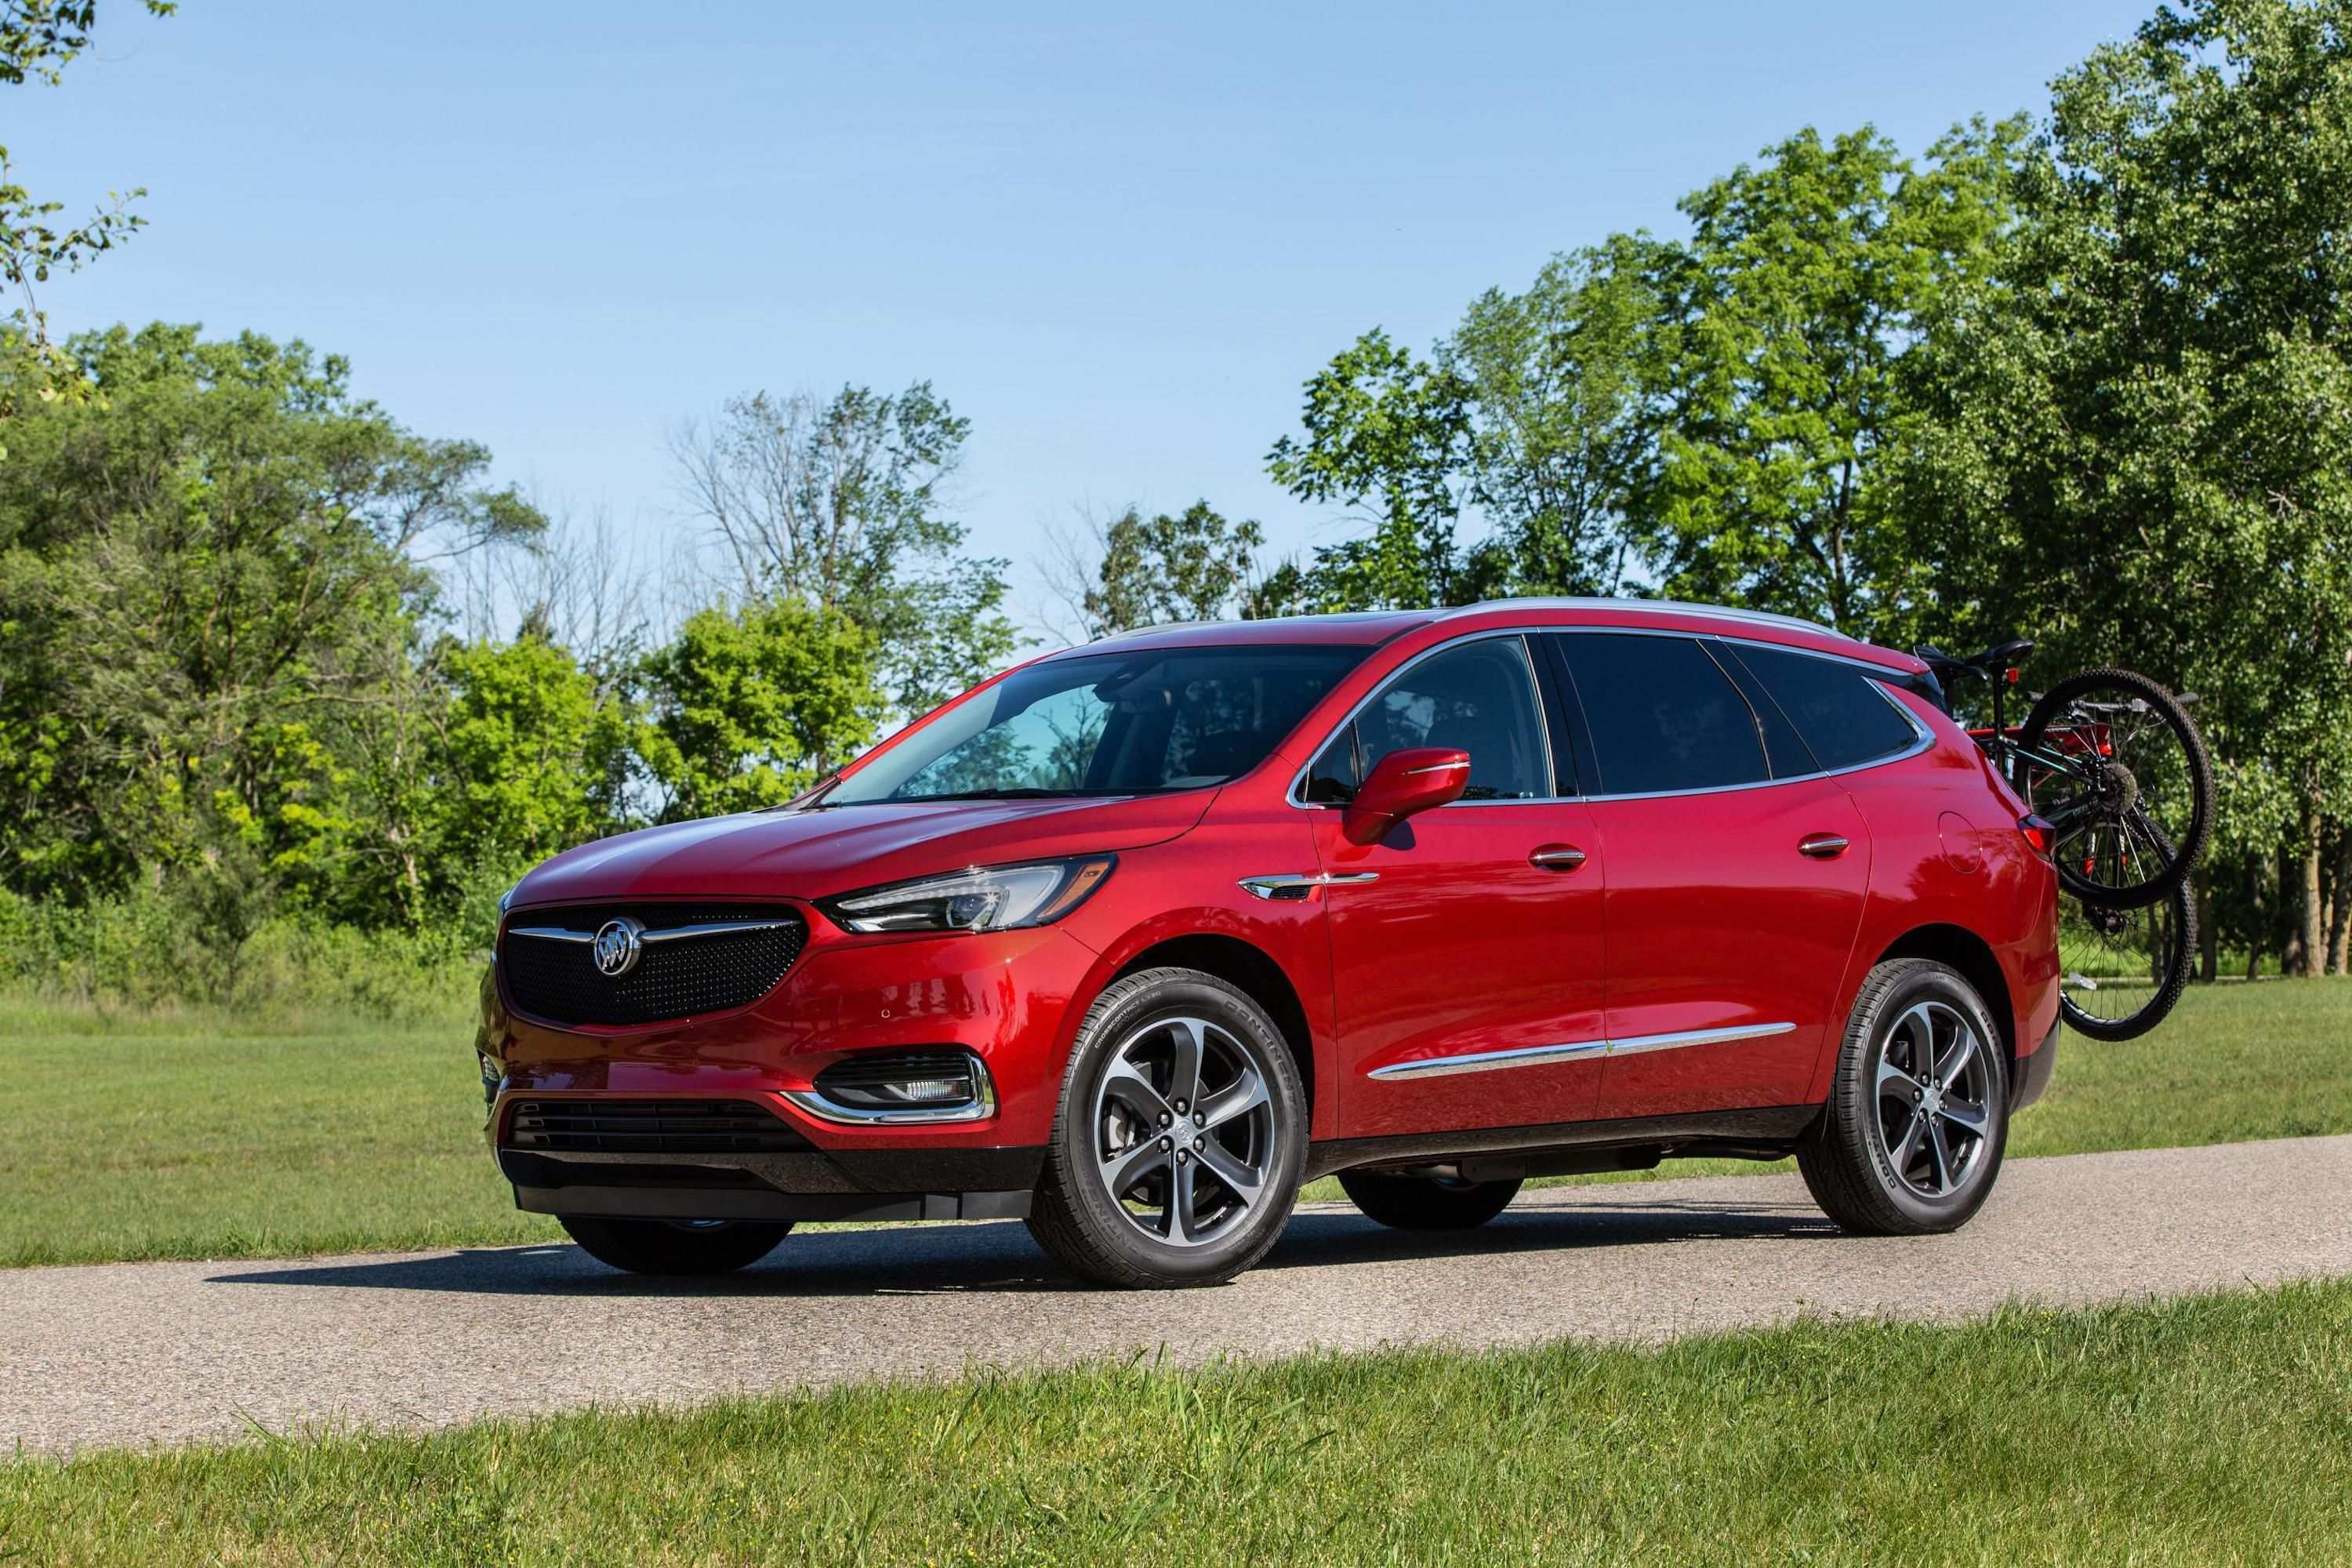 30 All New Buick Enclave 2020 Price for Buick Enclave 2020